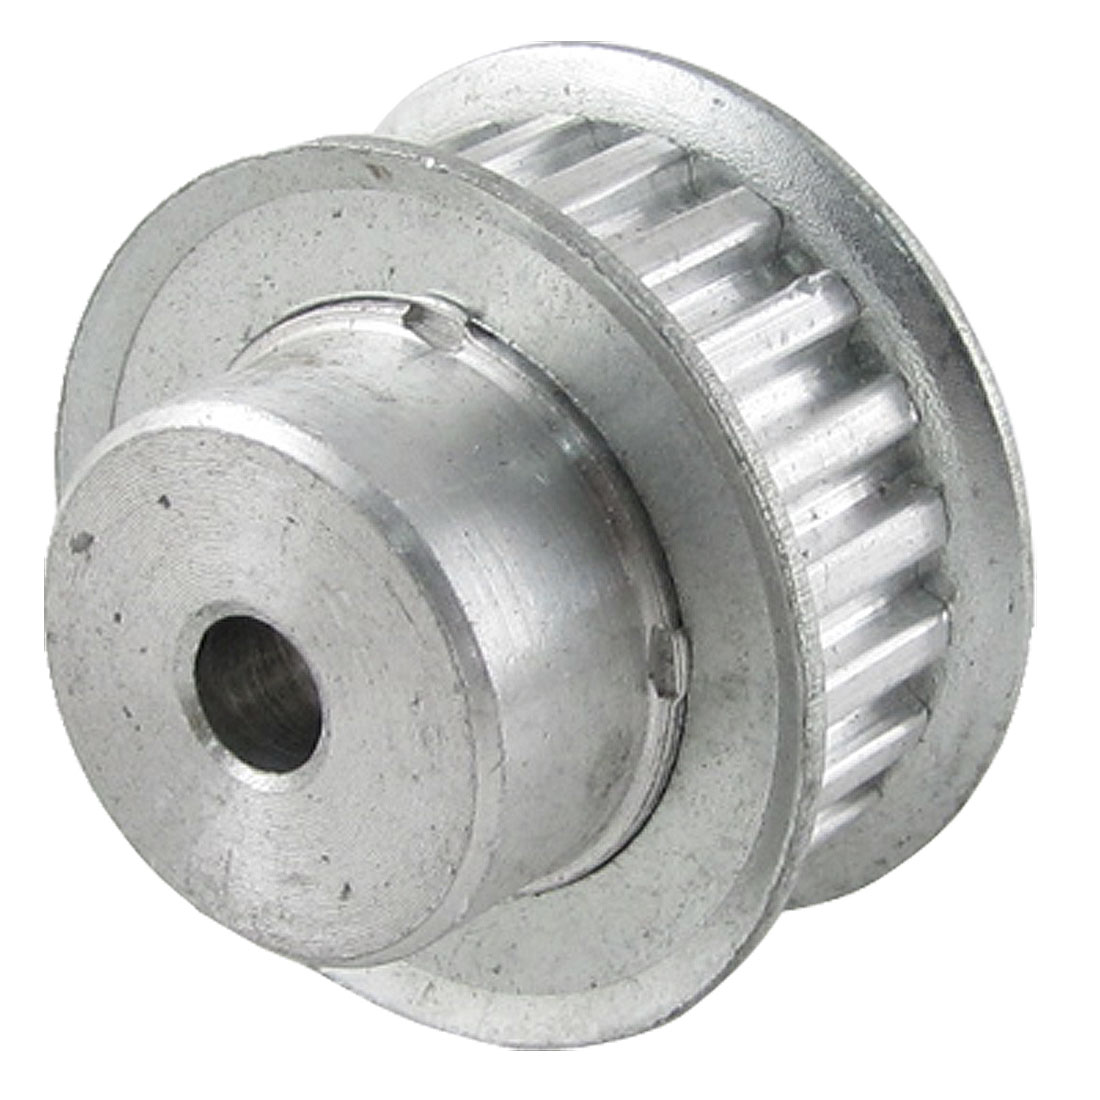 "15/64"" Bore 1/5"" Pitch 21 Teeth Timing Pulley 21XL for XL037 Belt"